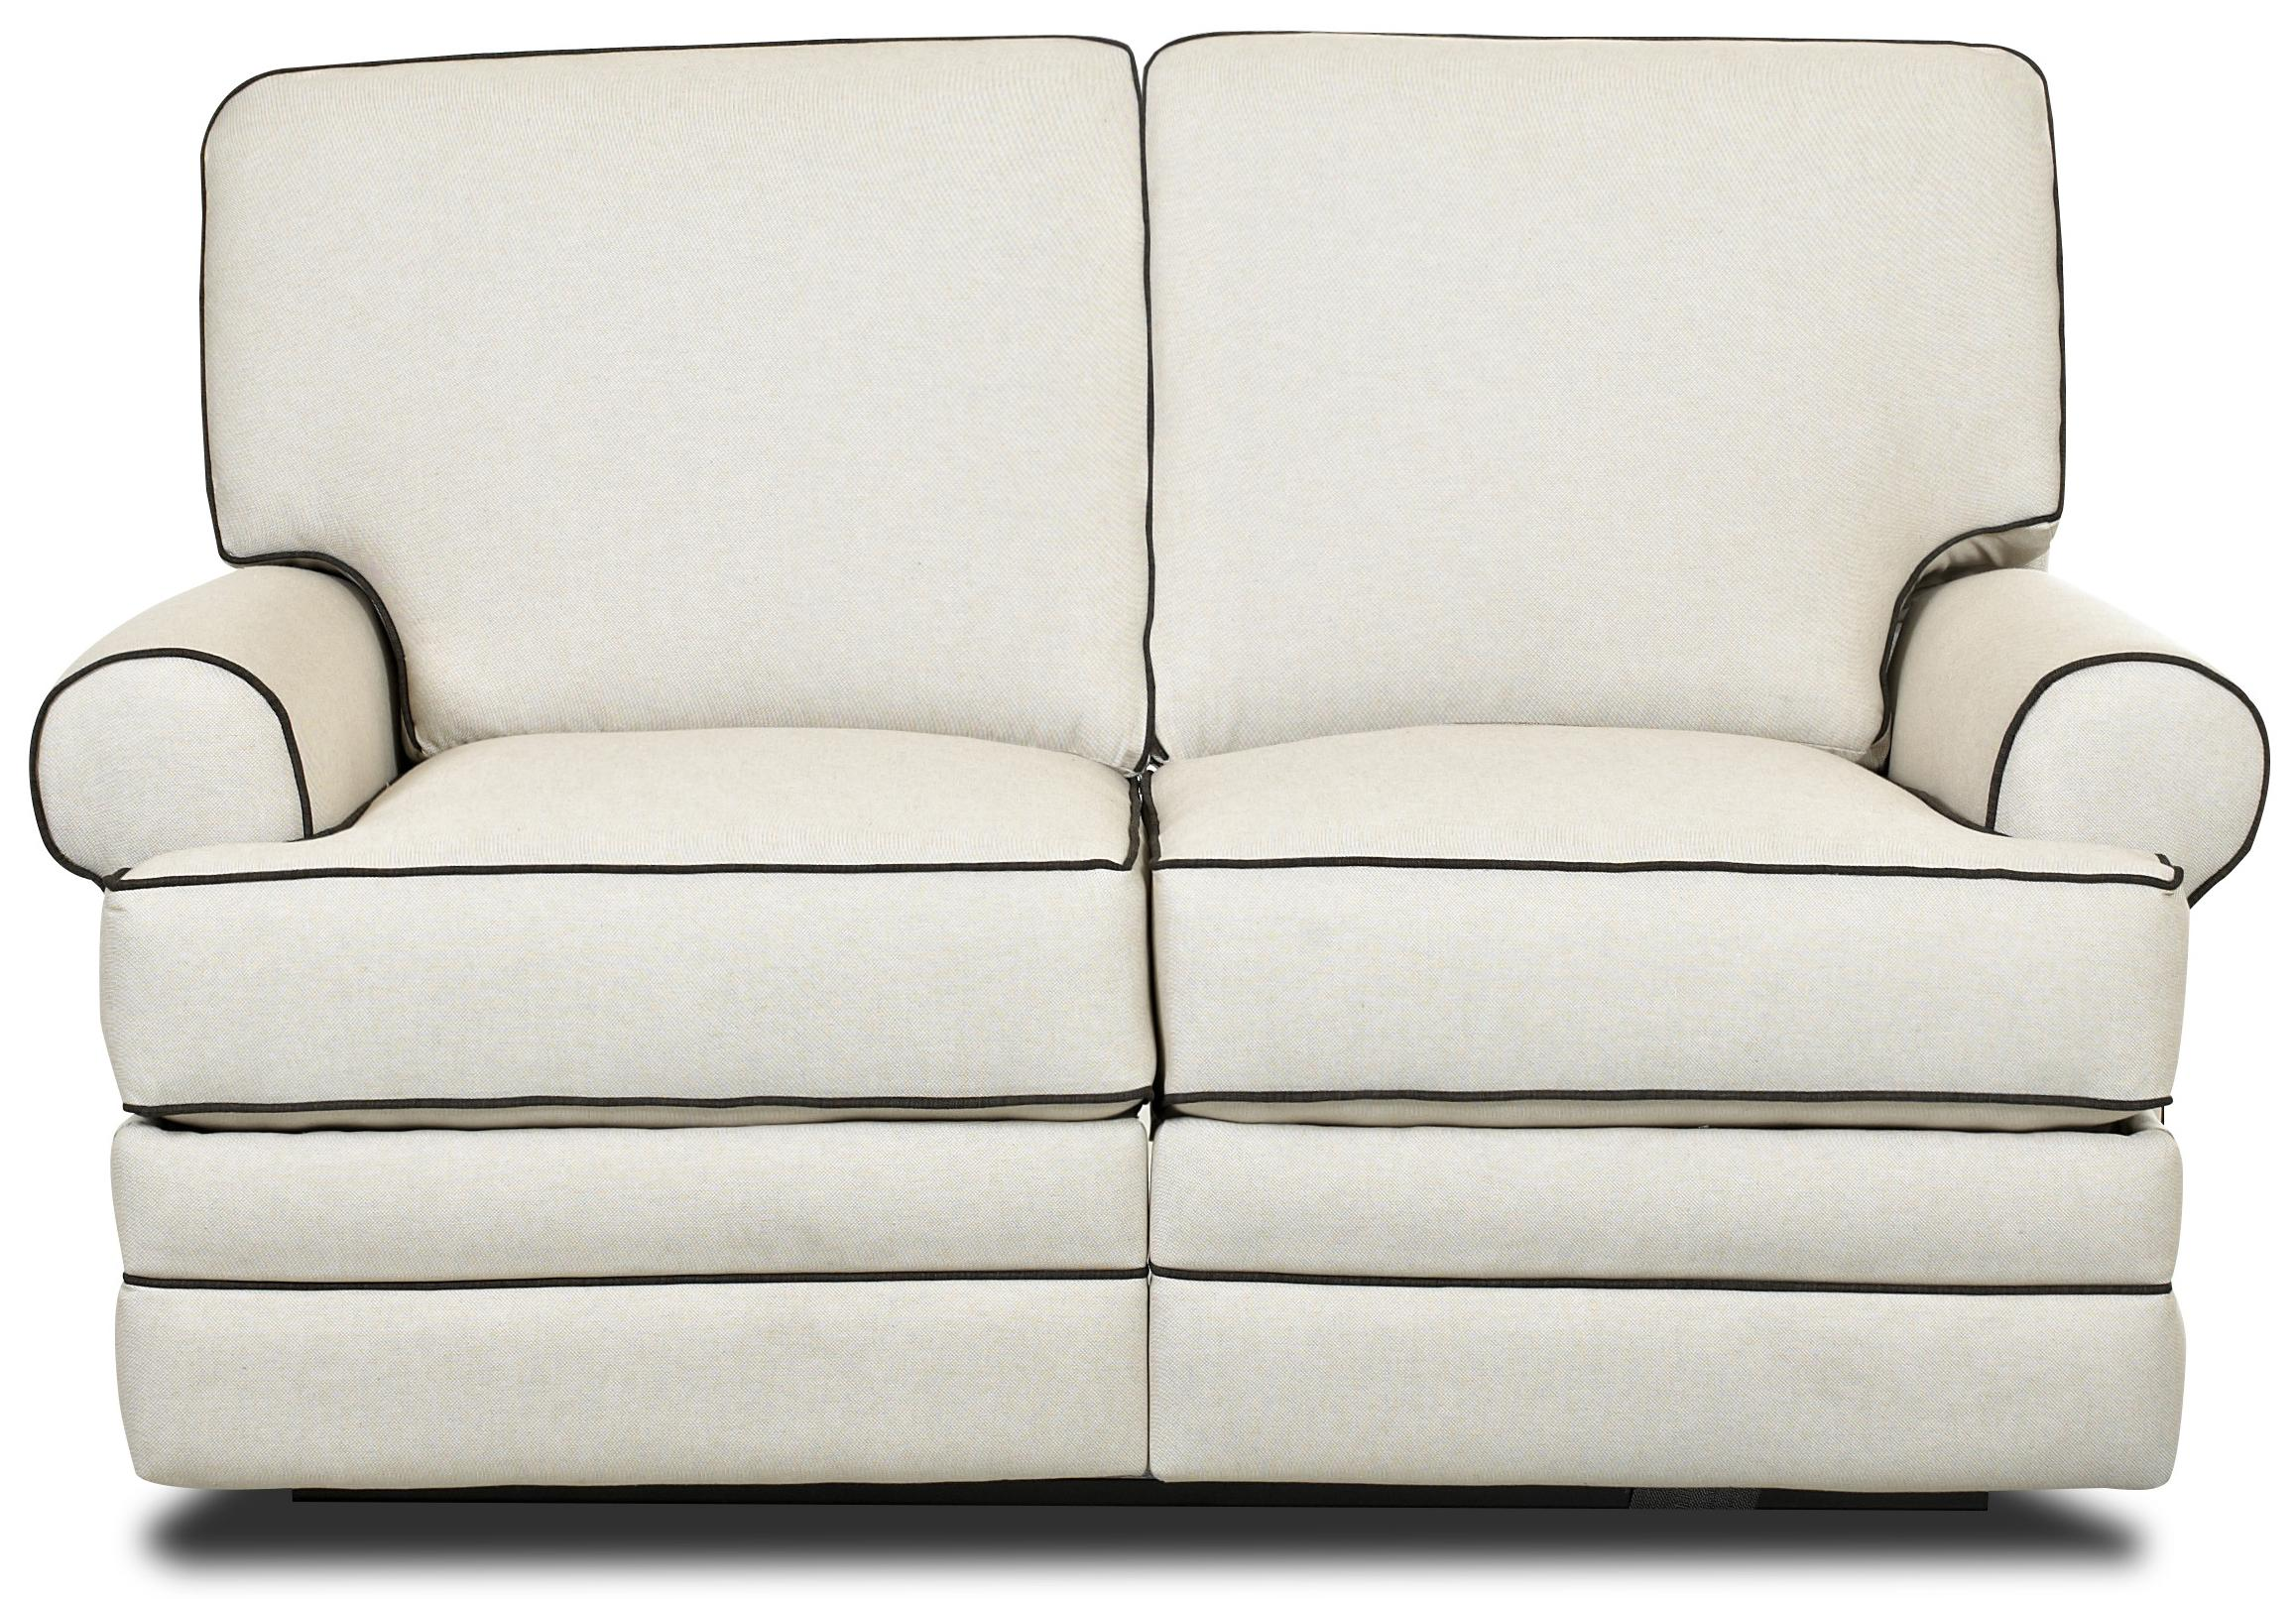 Belleview Power Reclining Loveseat by Klaussner at Northeast Factory Direct